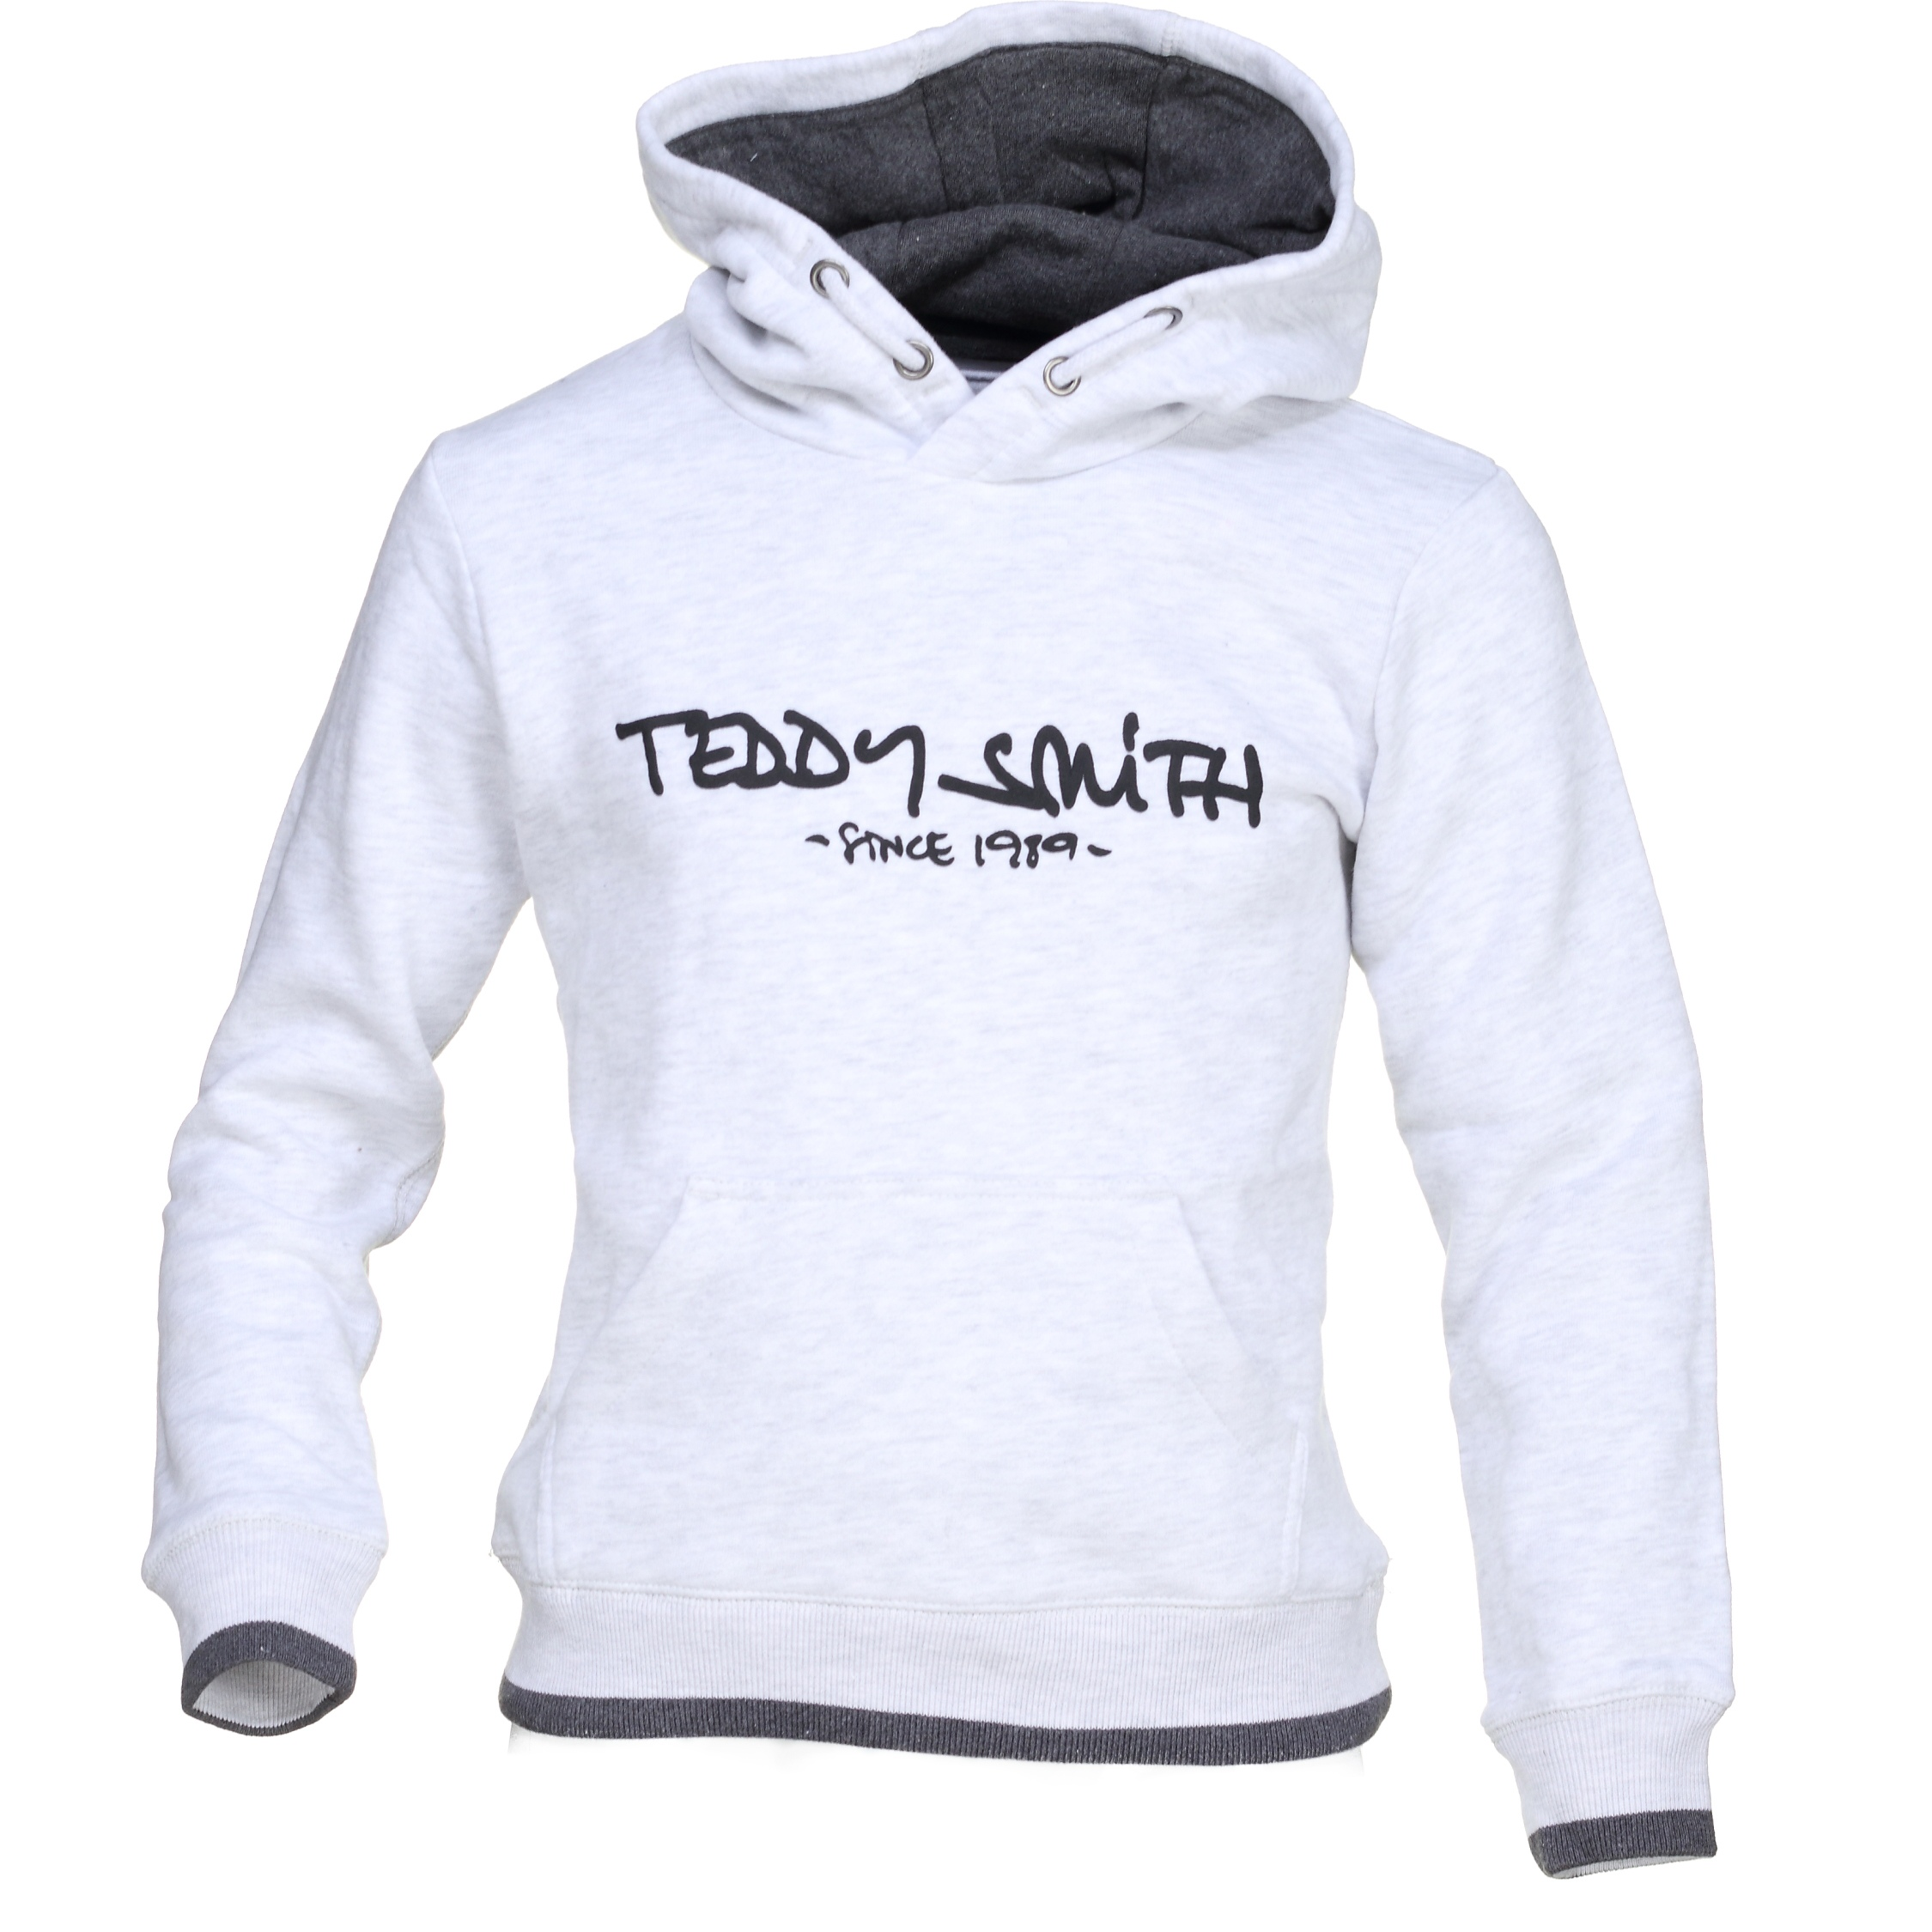 http://www.leadermode.com/153975/teddy-smith-siclass-hoody-jr-60815916-267-white-melange.jpg